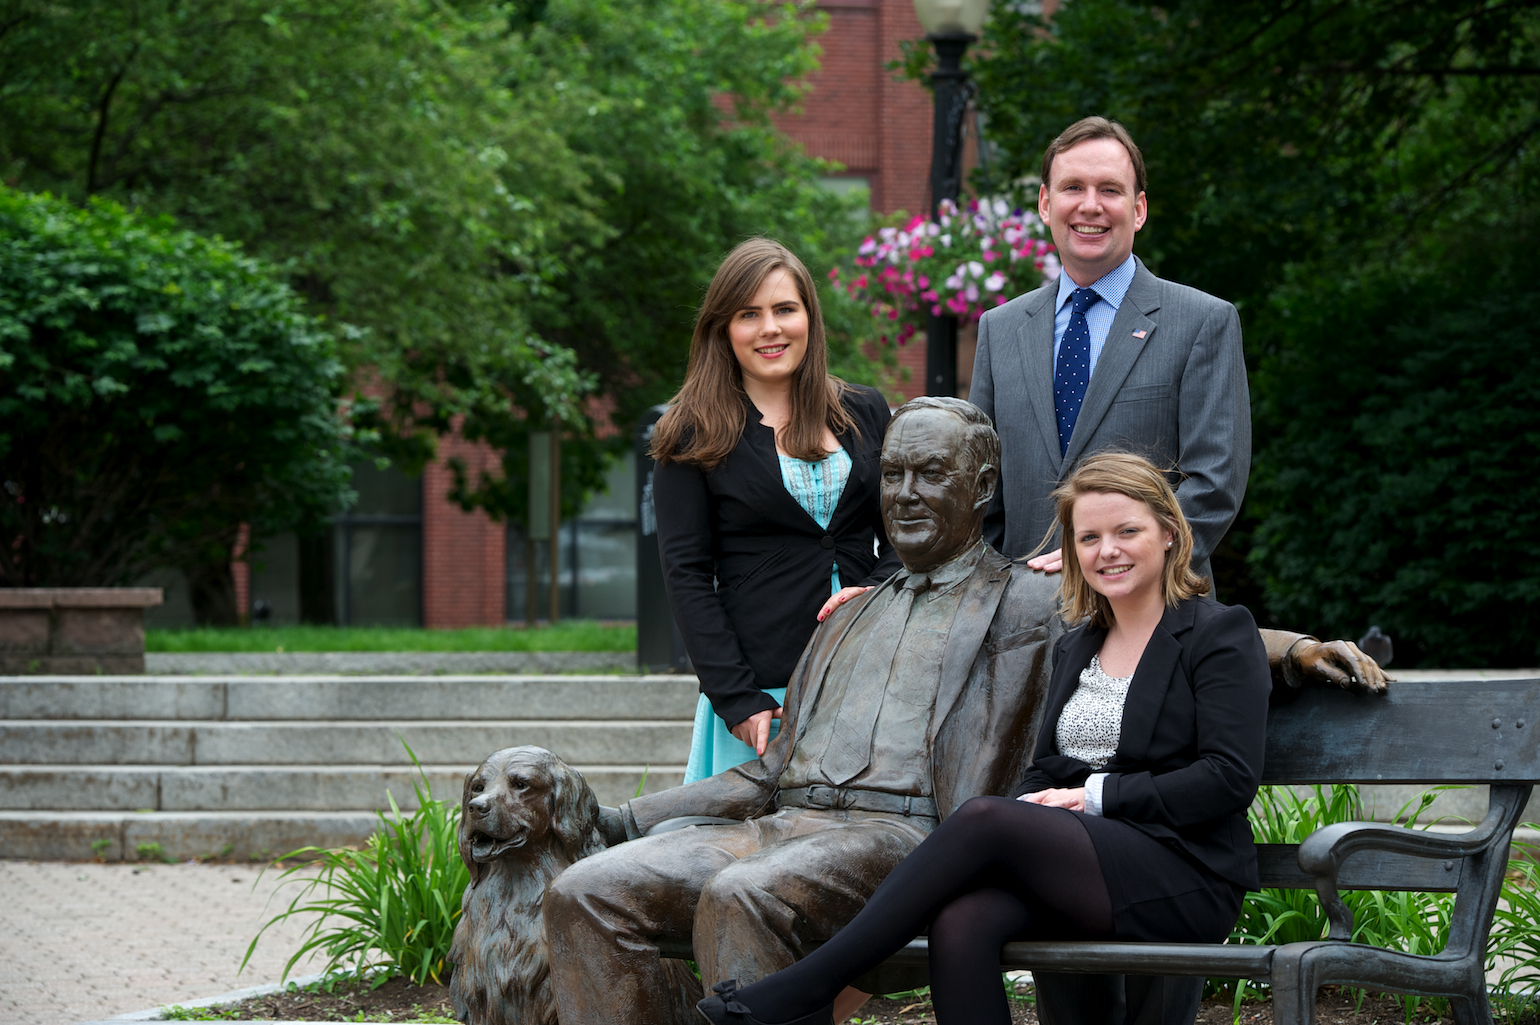 From l to r: Assemblyman Michael Cusick, Aoife Wilson (Clonakilty) and Lisa Keohane (Bantry) who were Whalen Interns from the University College Cork pictured at the Tricentennial Park in Albany. The park features a statue of former Albany Mayor Thomas Whalen and his dog - June 2013.